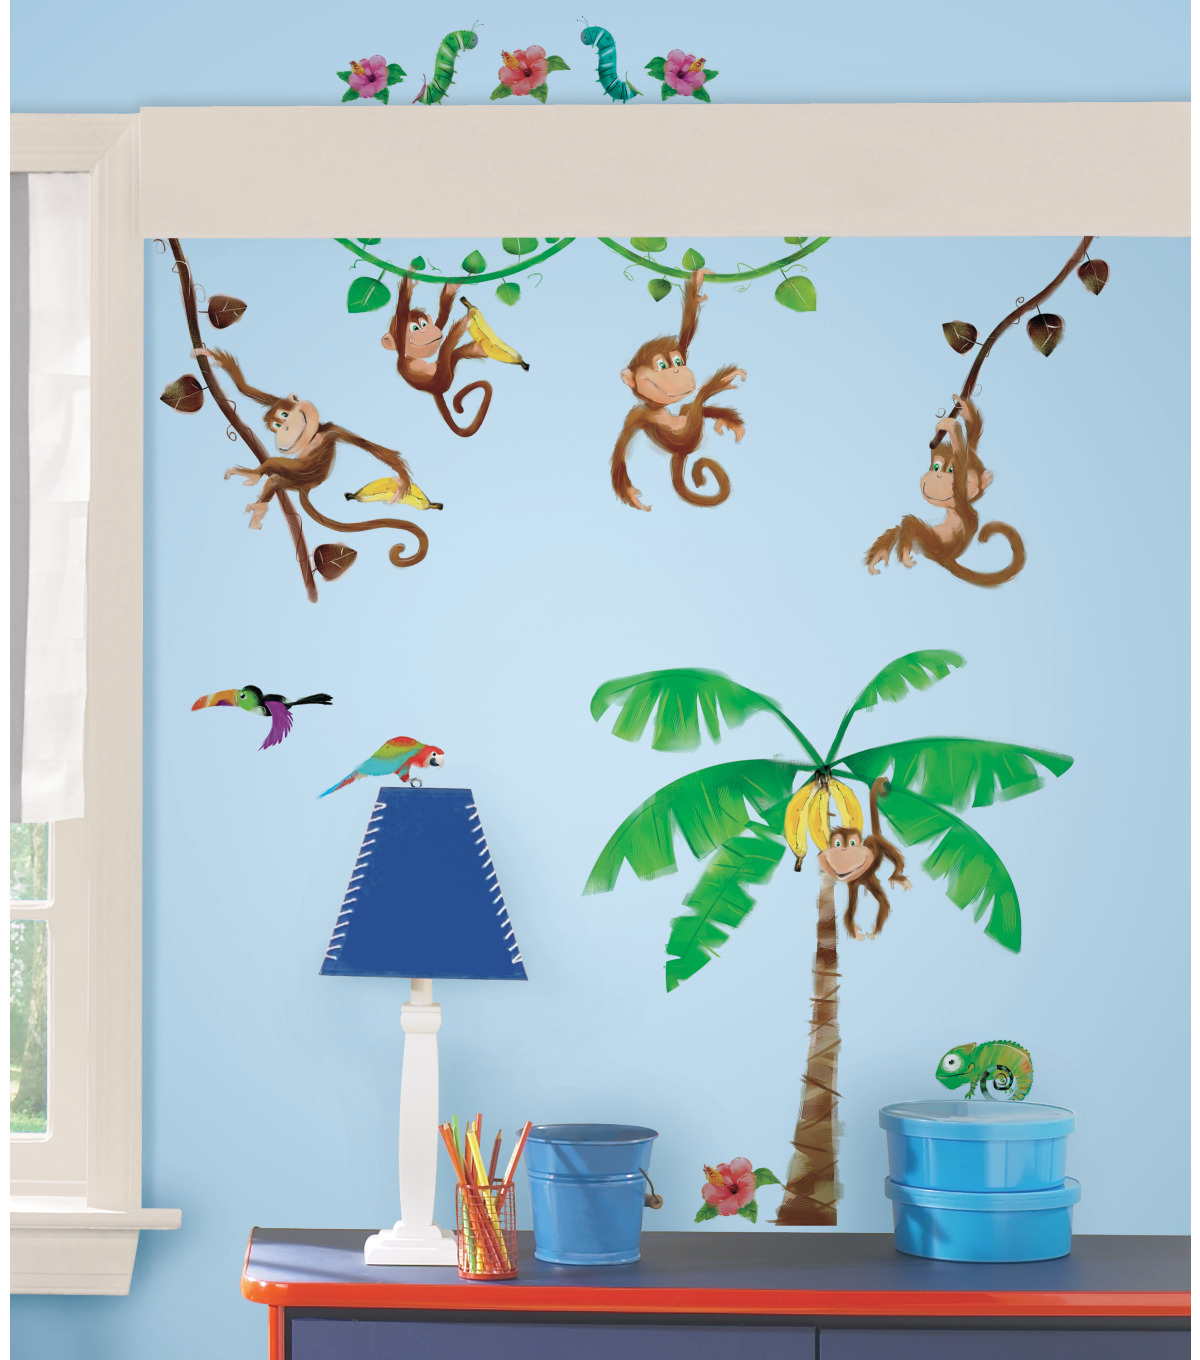 York Wallcoverings Peel & Stick Wall Decals-Monkey Business